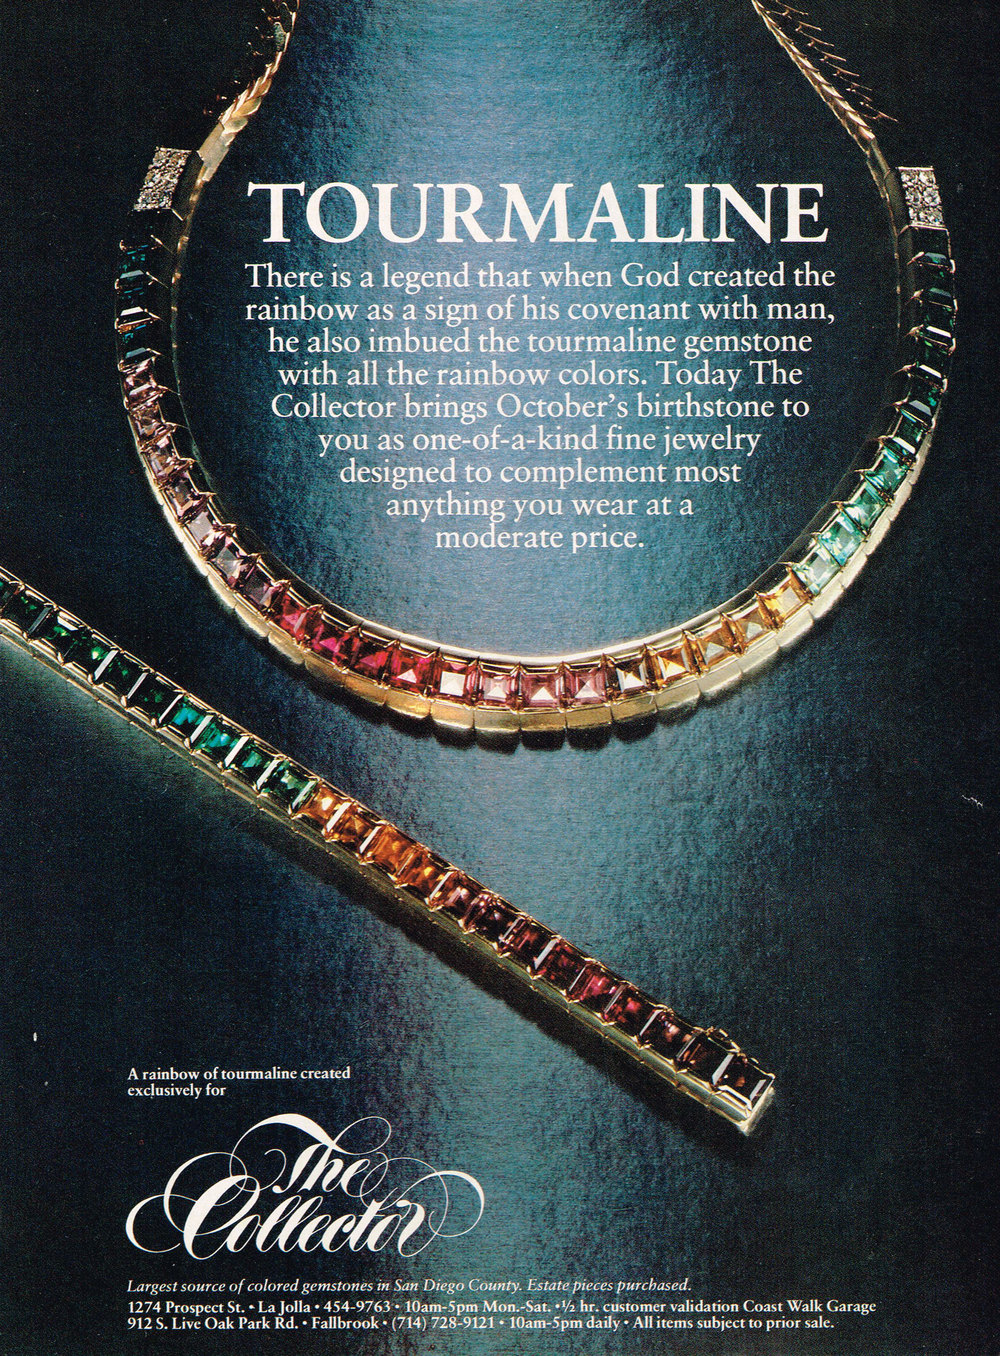 In the early 1980s, an ad like the above was one of the only ways Pala International (and its retail relative, The Collector Fine Jewelry) had to attract clientele. In early 2000, Richard W. Hughes debuted Pala's Palagems website, and text-based news was sent to subscribers on an as-needed basis. With the departure of Richard in 2005 and the introduction of brother David as news editor, an image-rich monthly newsletter began.     Ten years later we felt it was time to craft a new look to our website and this monthly e-newsletter. Like the new website, the revamped newsletter will adapt well to mobile devices.       Let us know what you think.